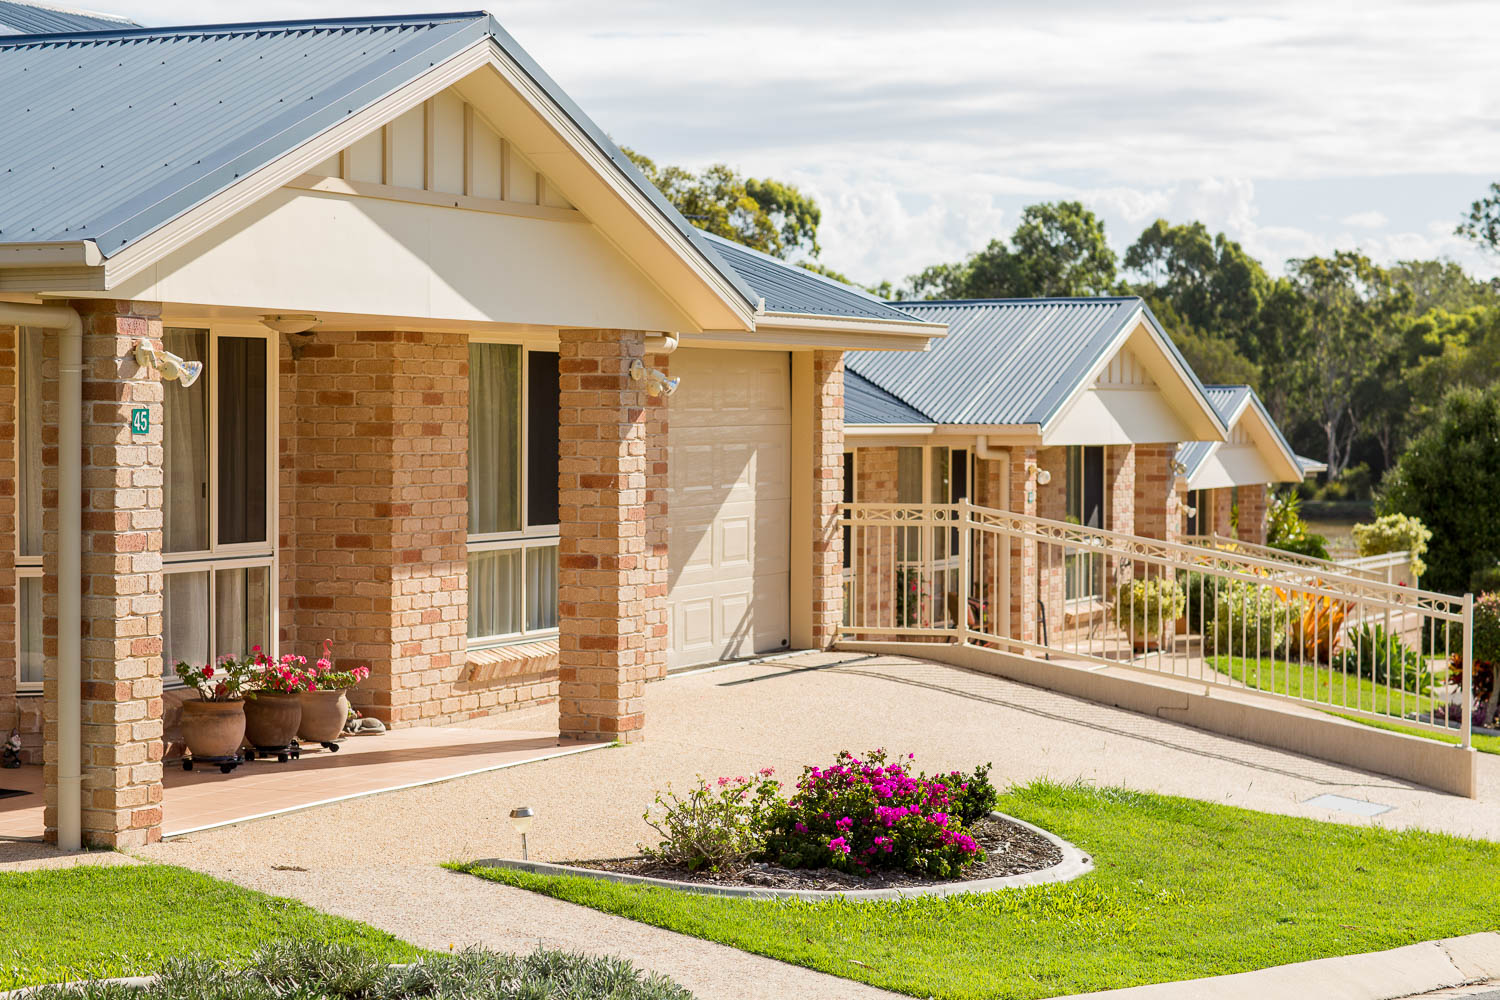 CommercialAgedCare-41